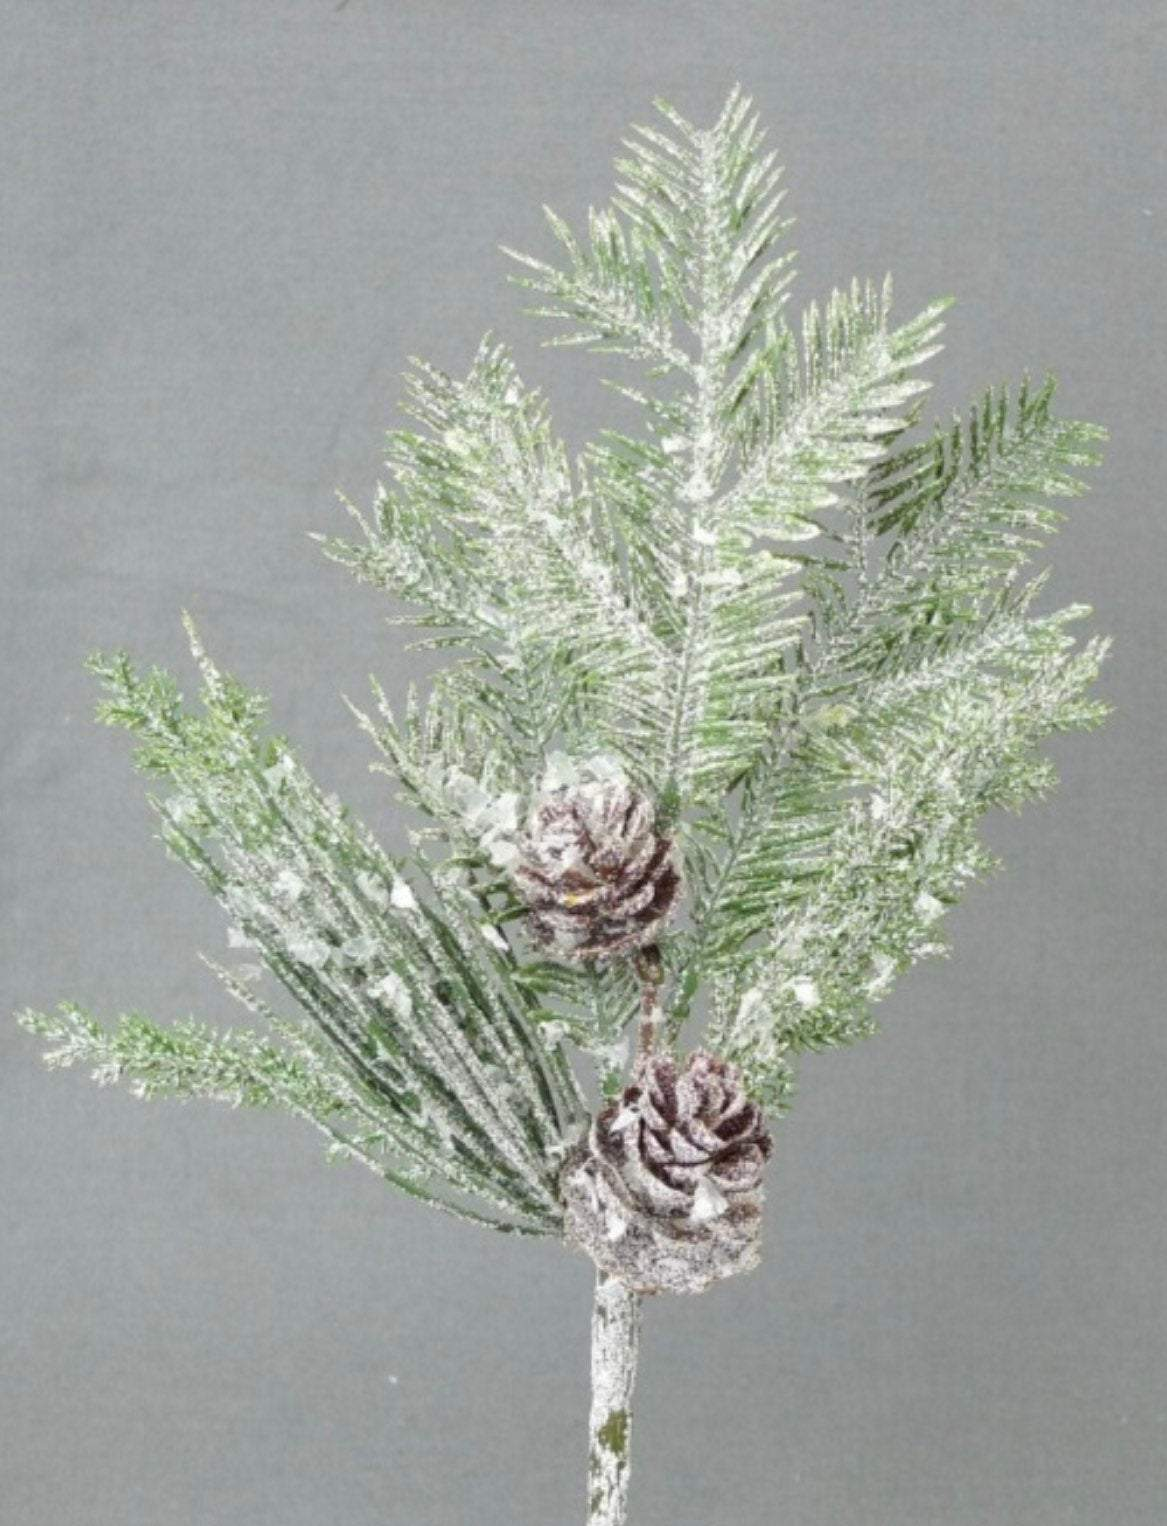 Artificial iced Pine, christmas mixed pine, pine pick with mini pinecones, snowy Greenery stems, winter greenery